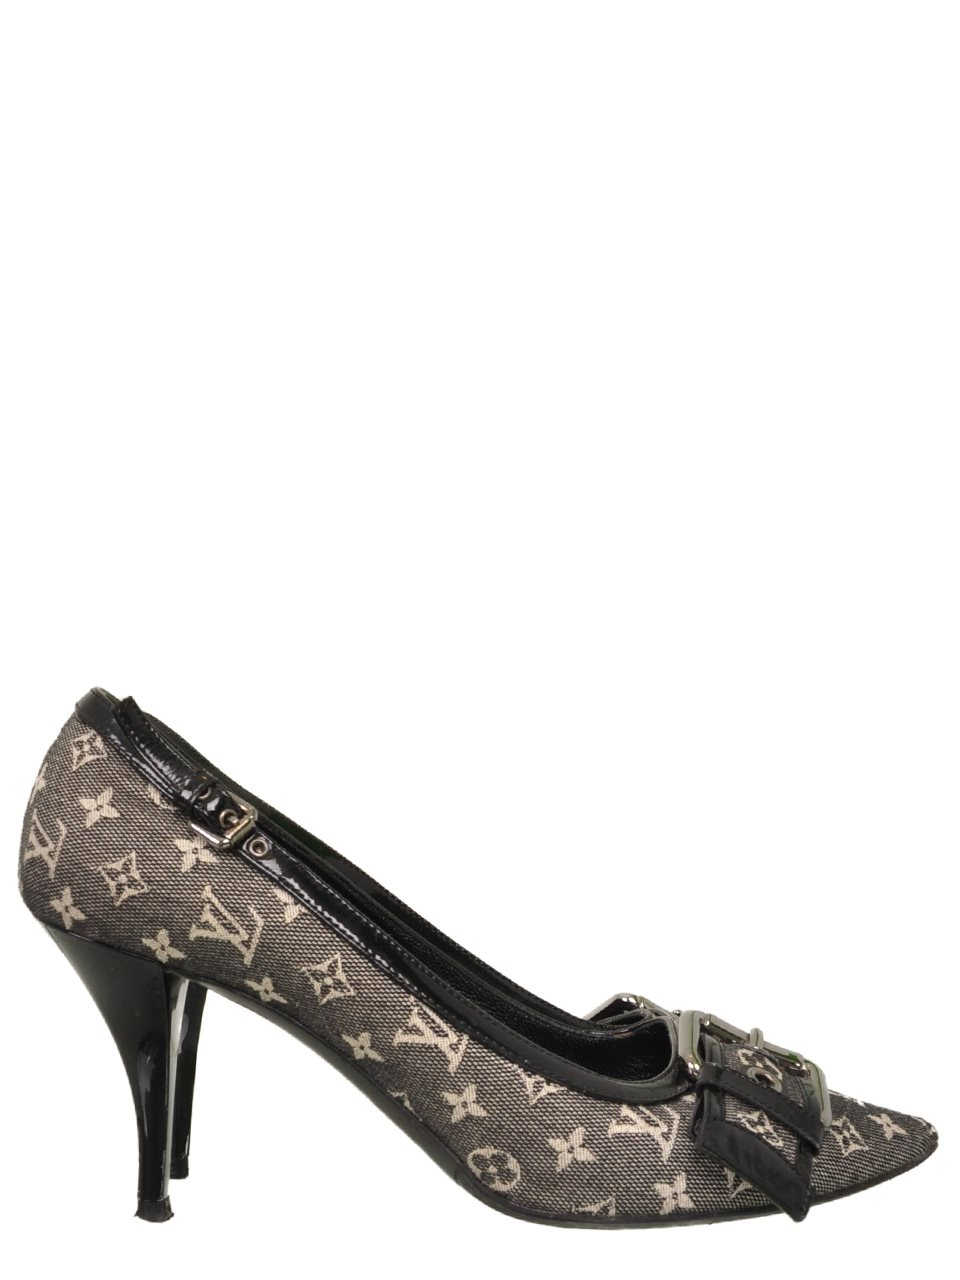 Louis Vuitton - Mini Lin Monogram Canvas & Leather Pointy Heels - Image 5 of 5